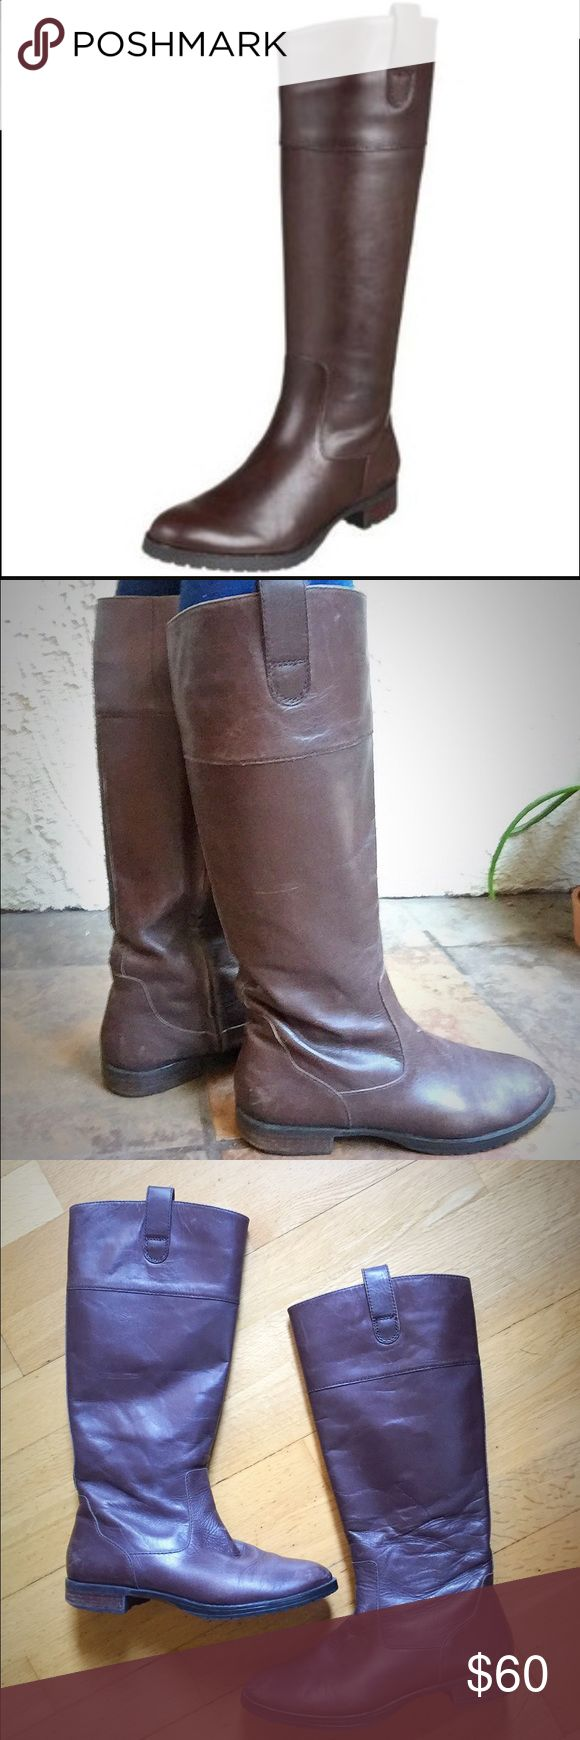 💥SALE💥Ralph Lauren Stara Brown Riding Boots Gorgeous equestrian style riding boot in dark brown from Ralph Lauren. Very comfortable; padded inner lining. Gently used. Ralph Lauren Shoes Winter & Rain Boots